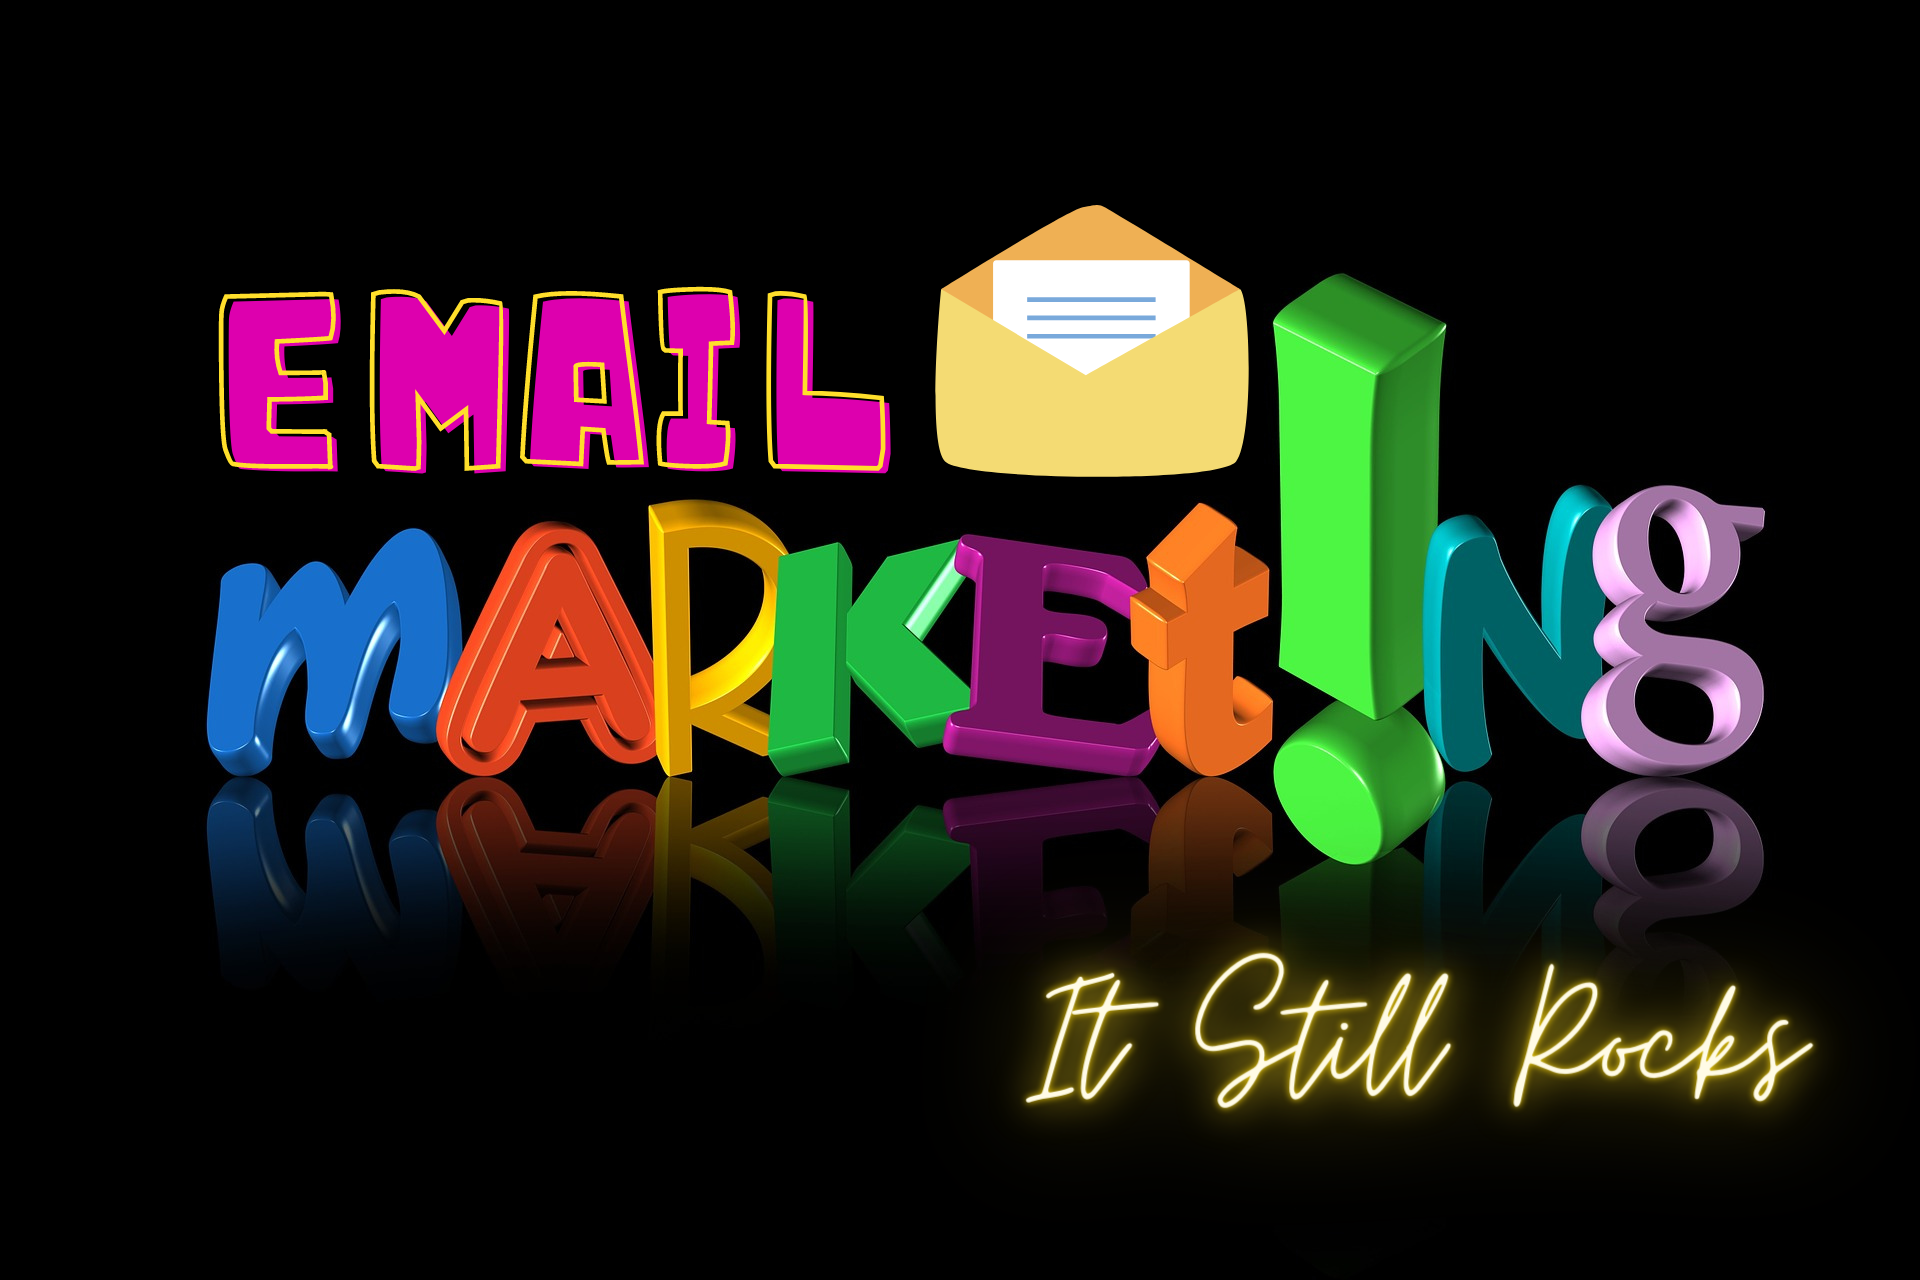 Email Marketing, Email Marketing Tools, Email marketing service, Email marketing Strategies